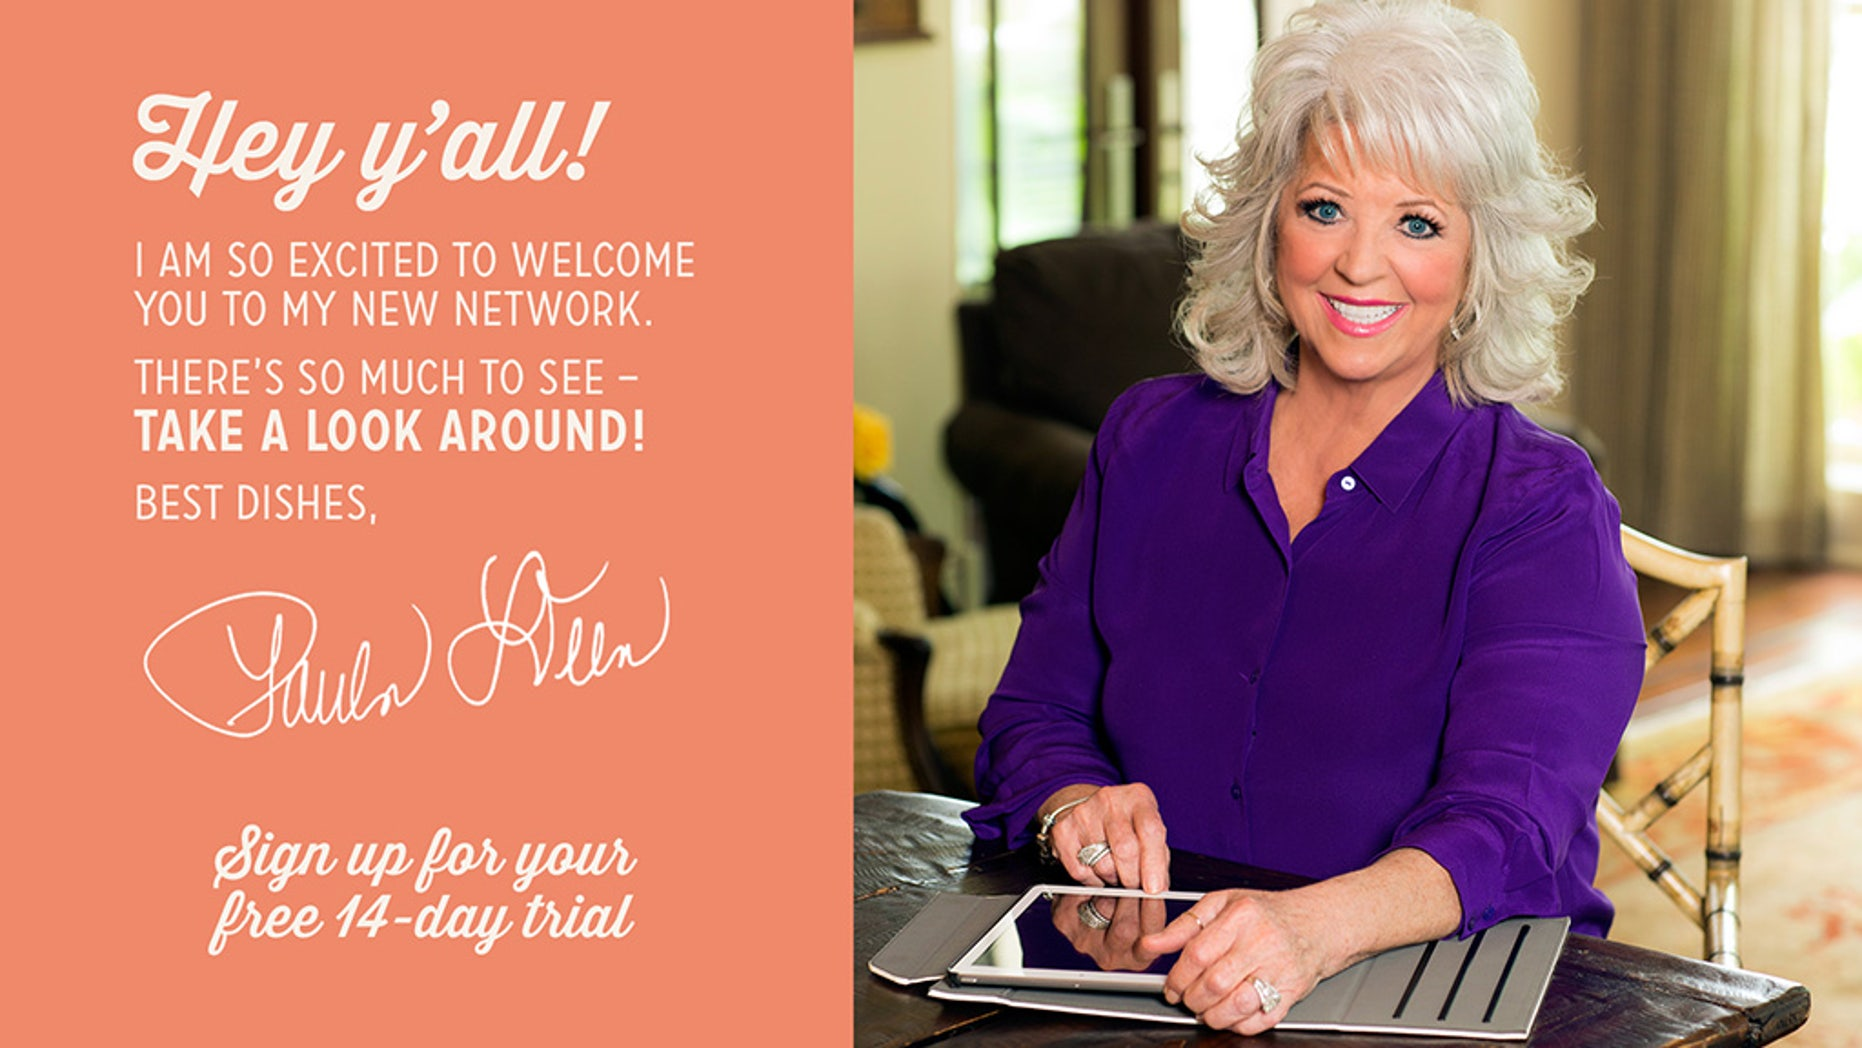 Paula Deen's new digital lifestyle network launches tomorrow.